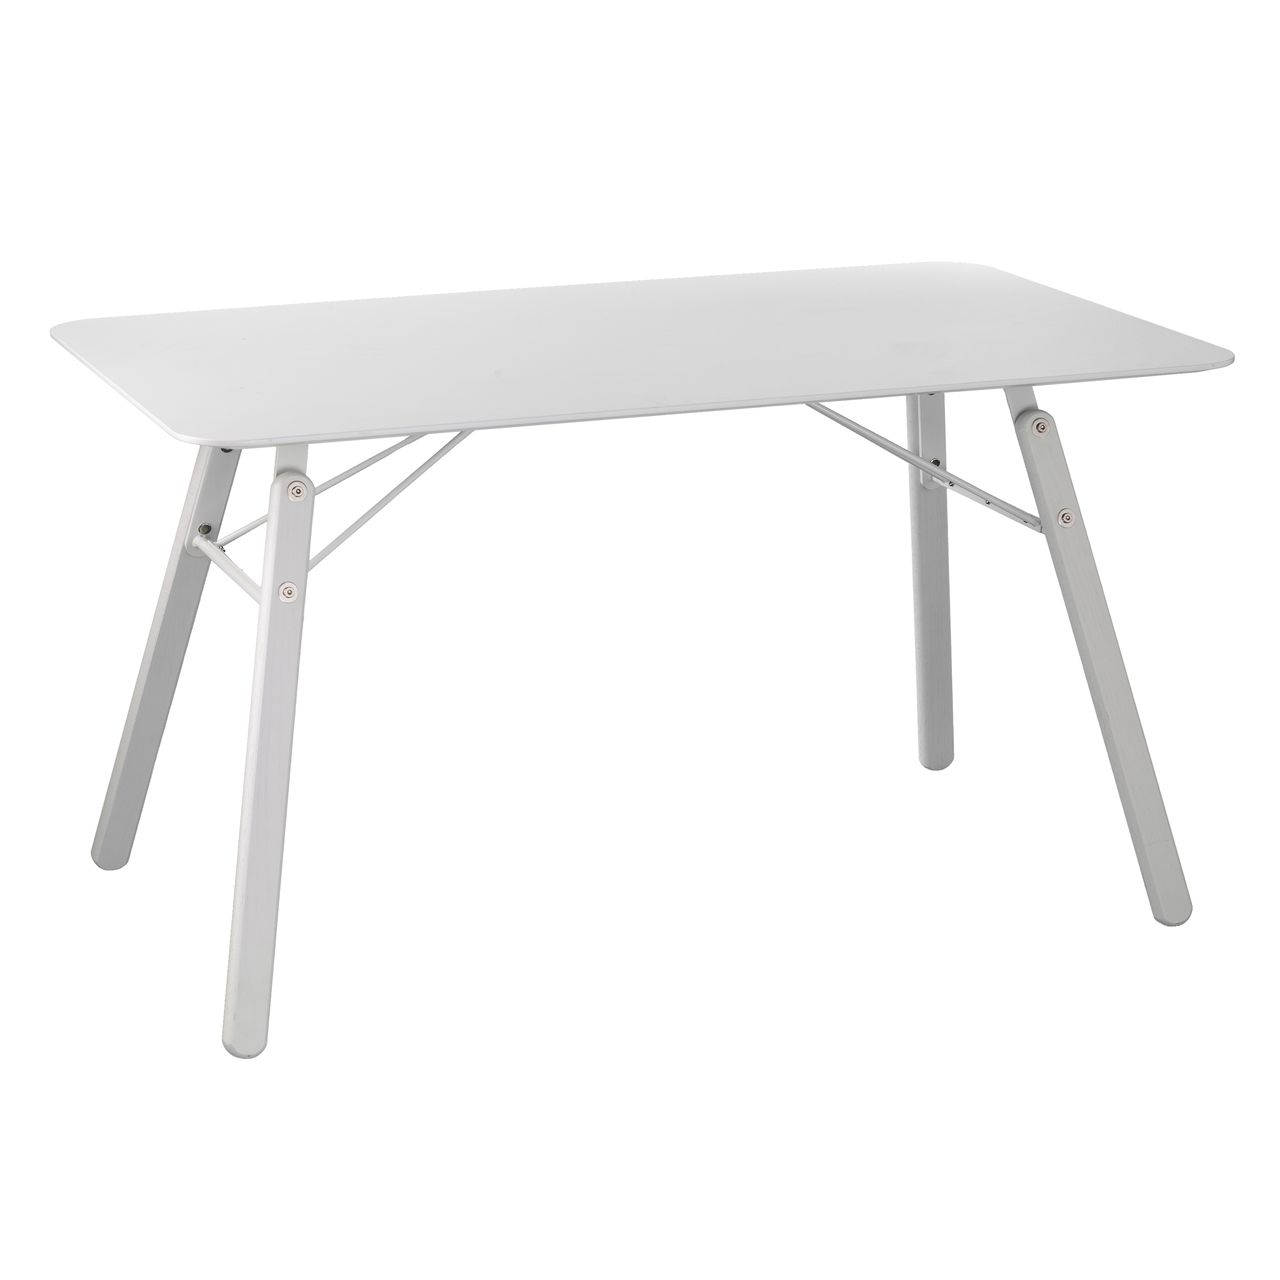 Holly & Martin Dinniman Midcentury Modern Dining Table in White